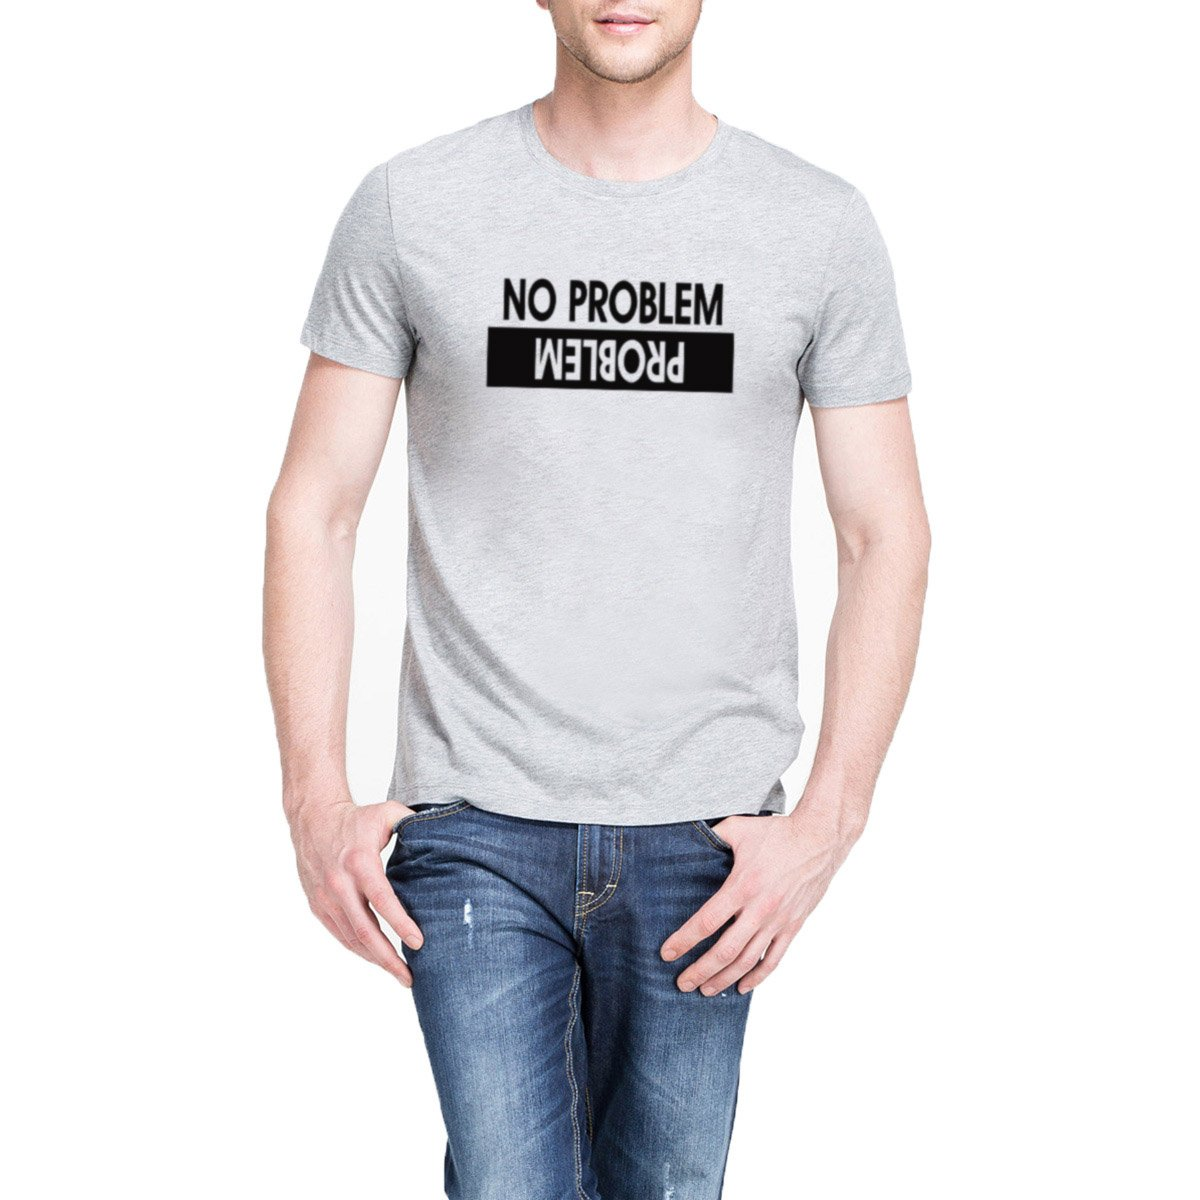 Loo Show S Problem No Problem Funny Casual Graphic T Shirts Tee